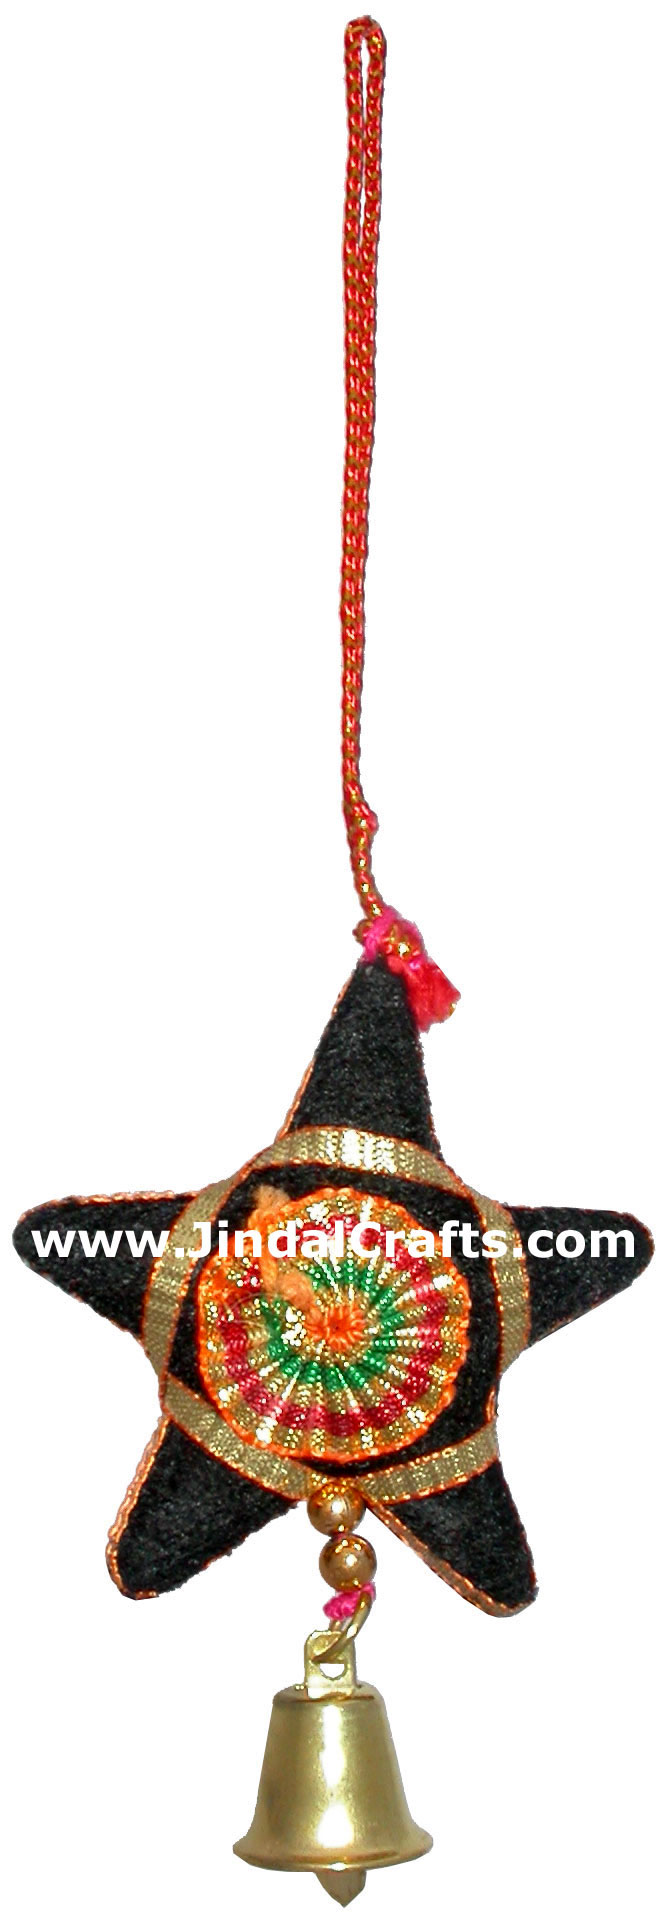 Handmade Traditional Star Hanging Indian Arts Crafts